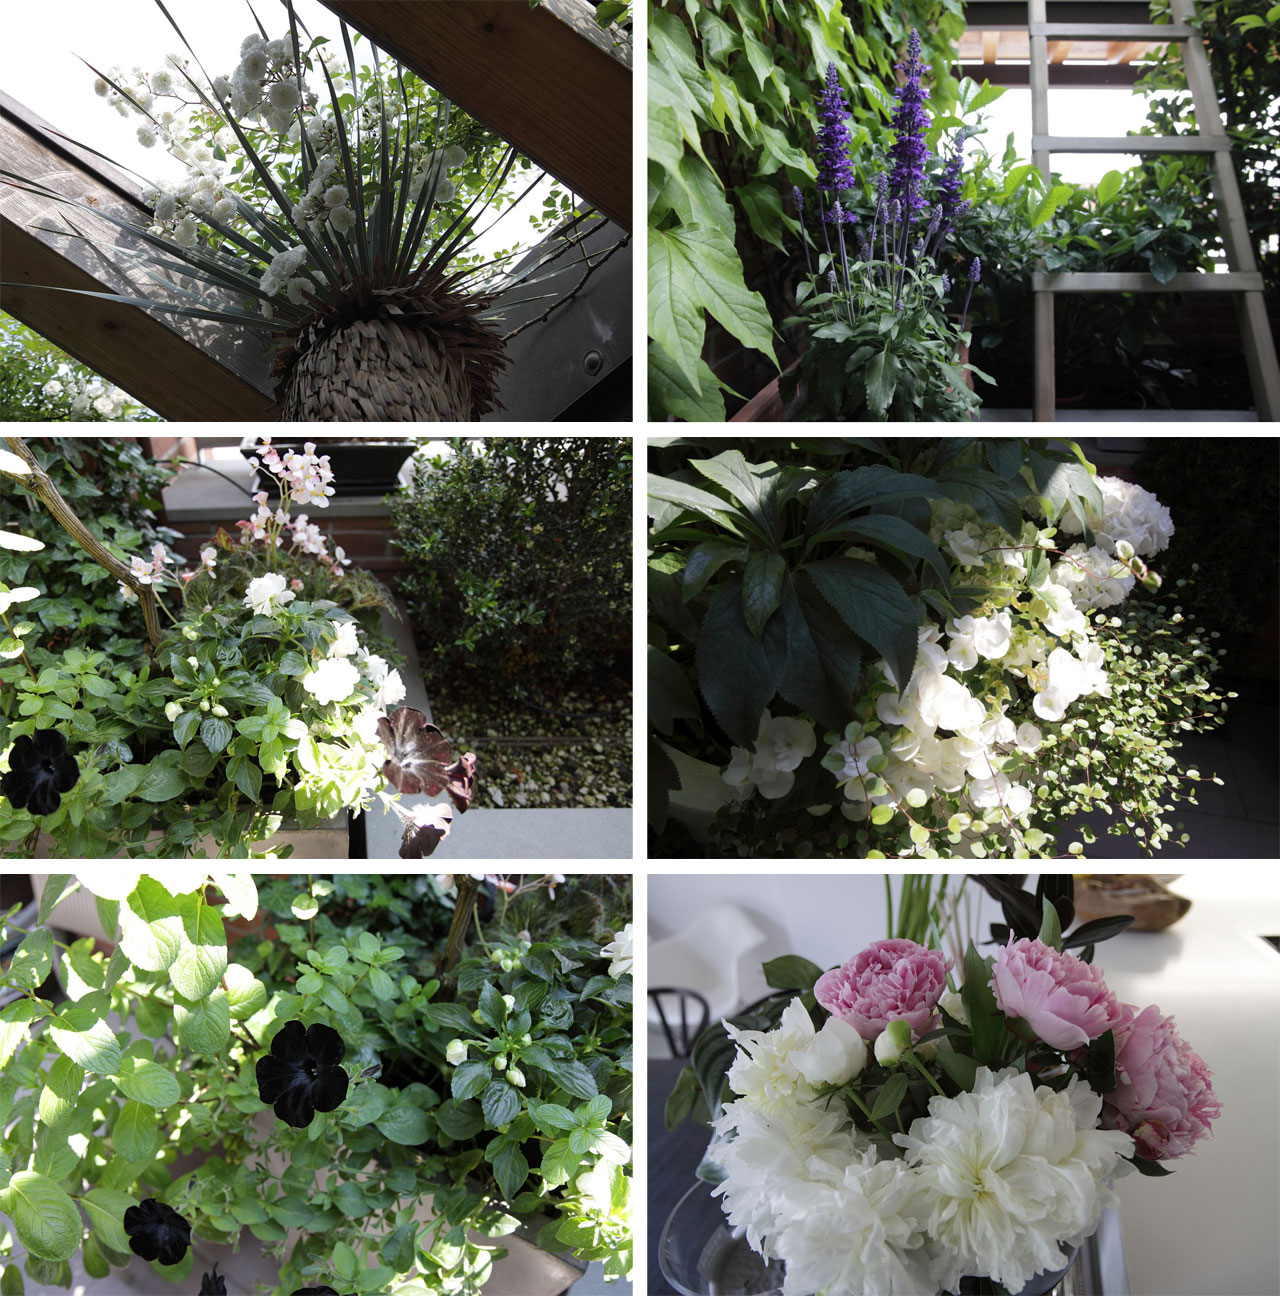 The flowers and plants that fill the small terrace.